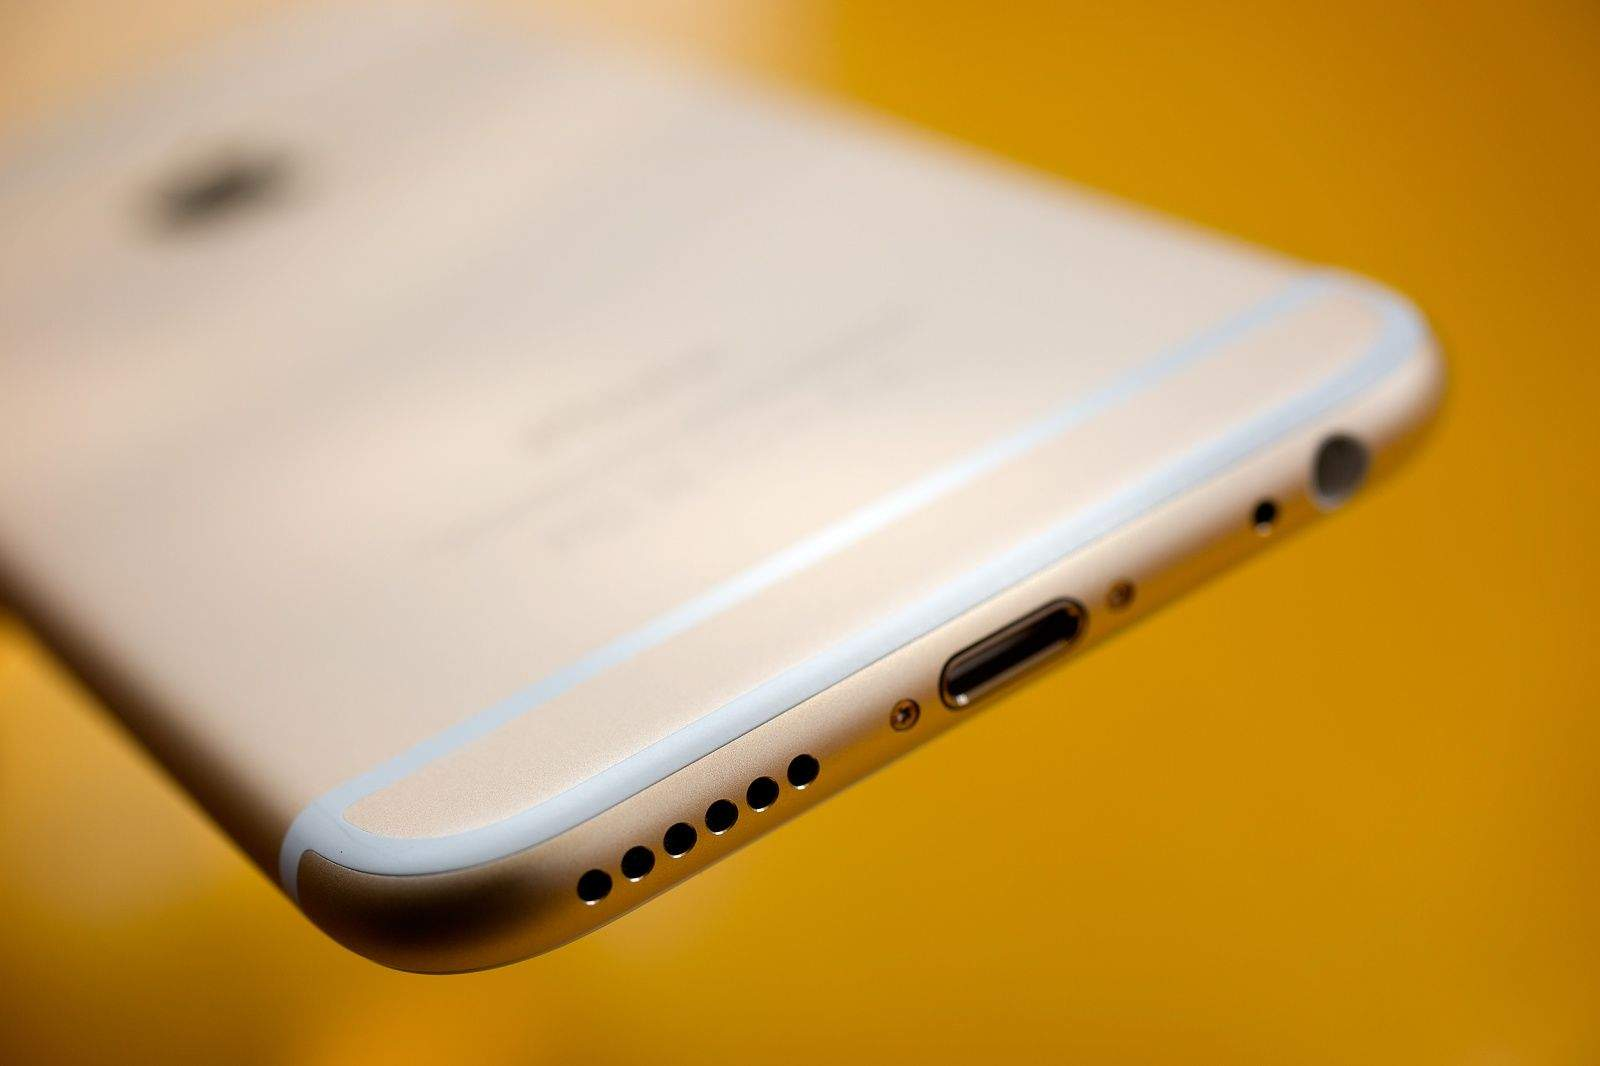 The iPhone 6 is big. And not just in terms of size, either.